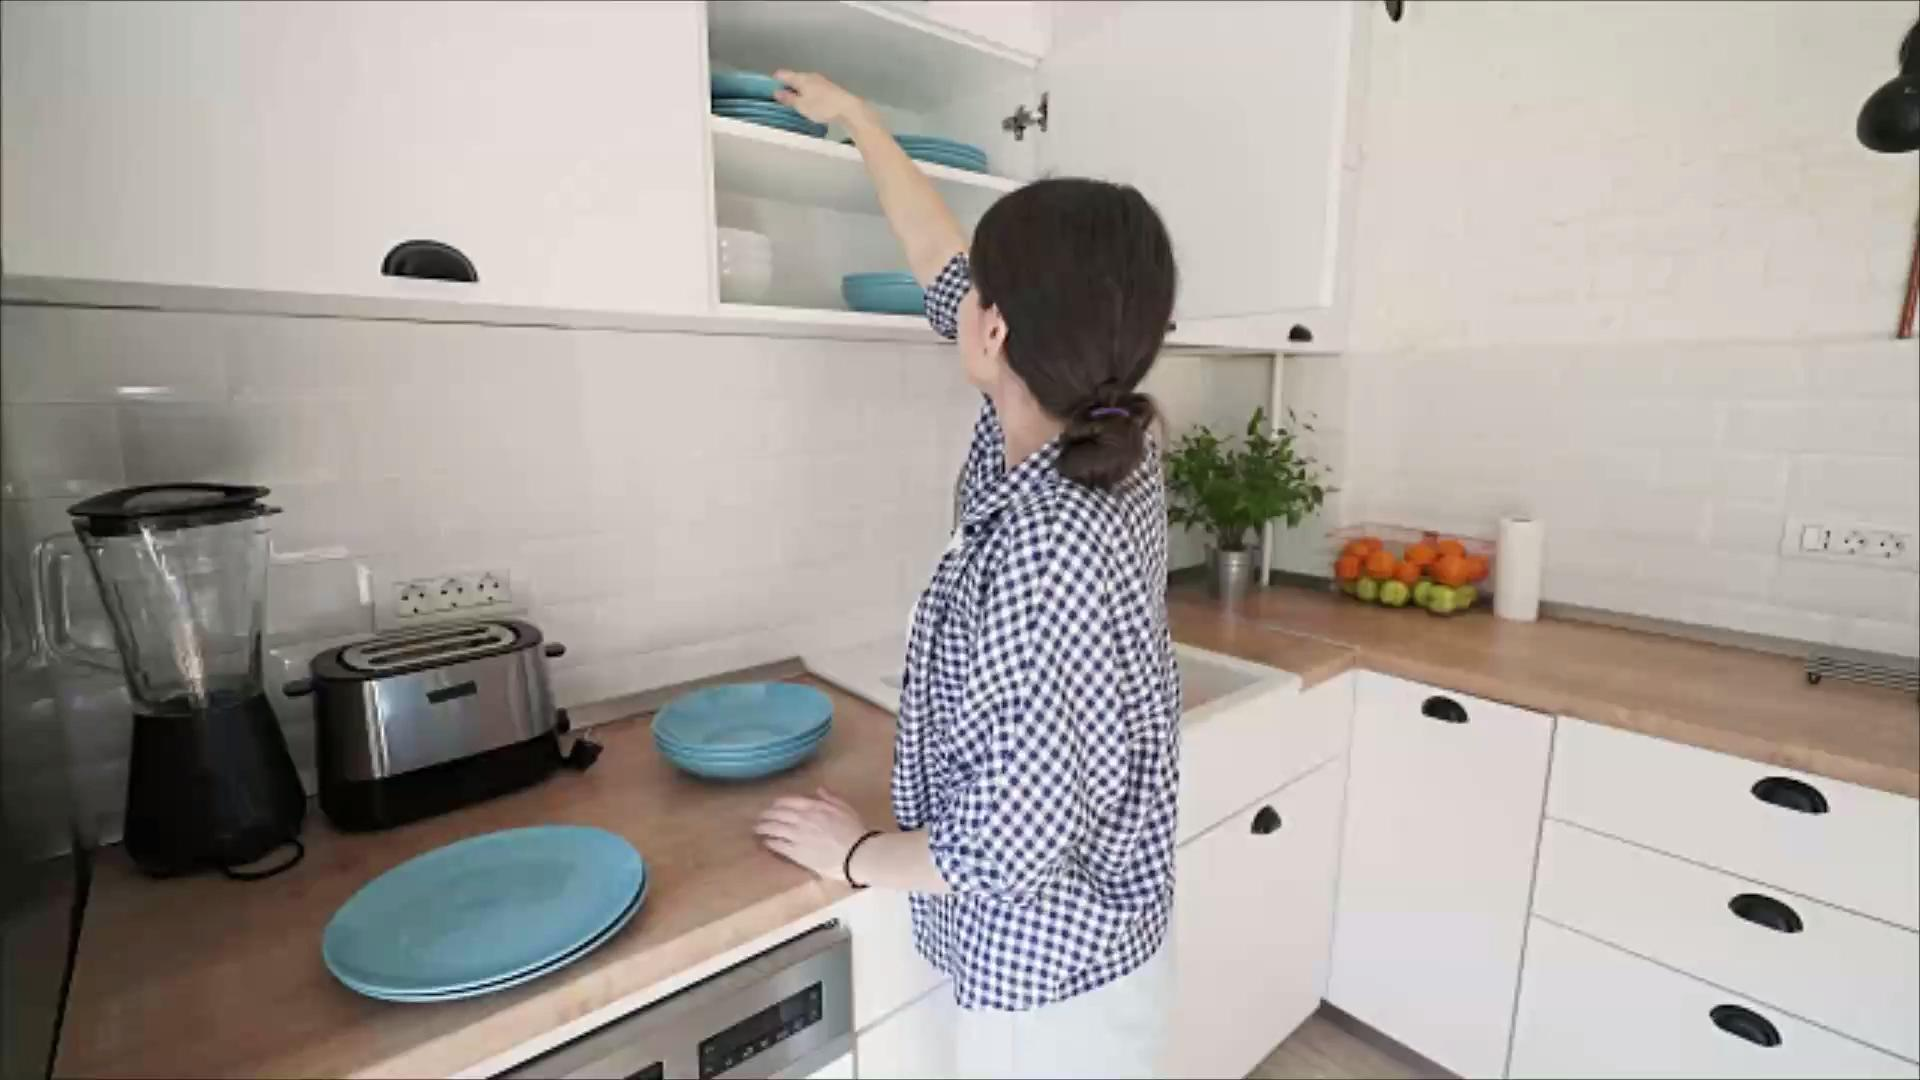 Household Chores That Burn Calories